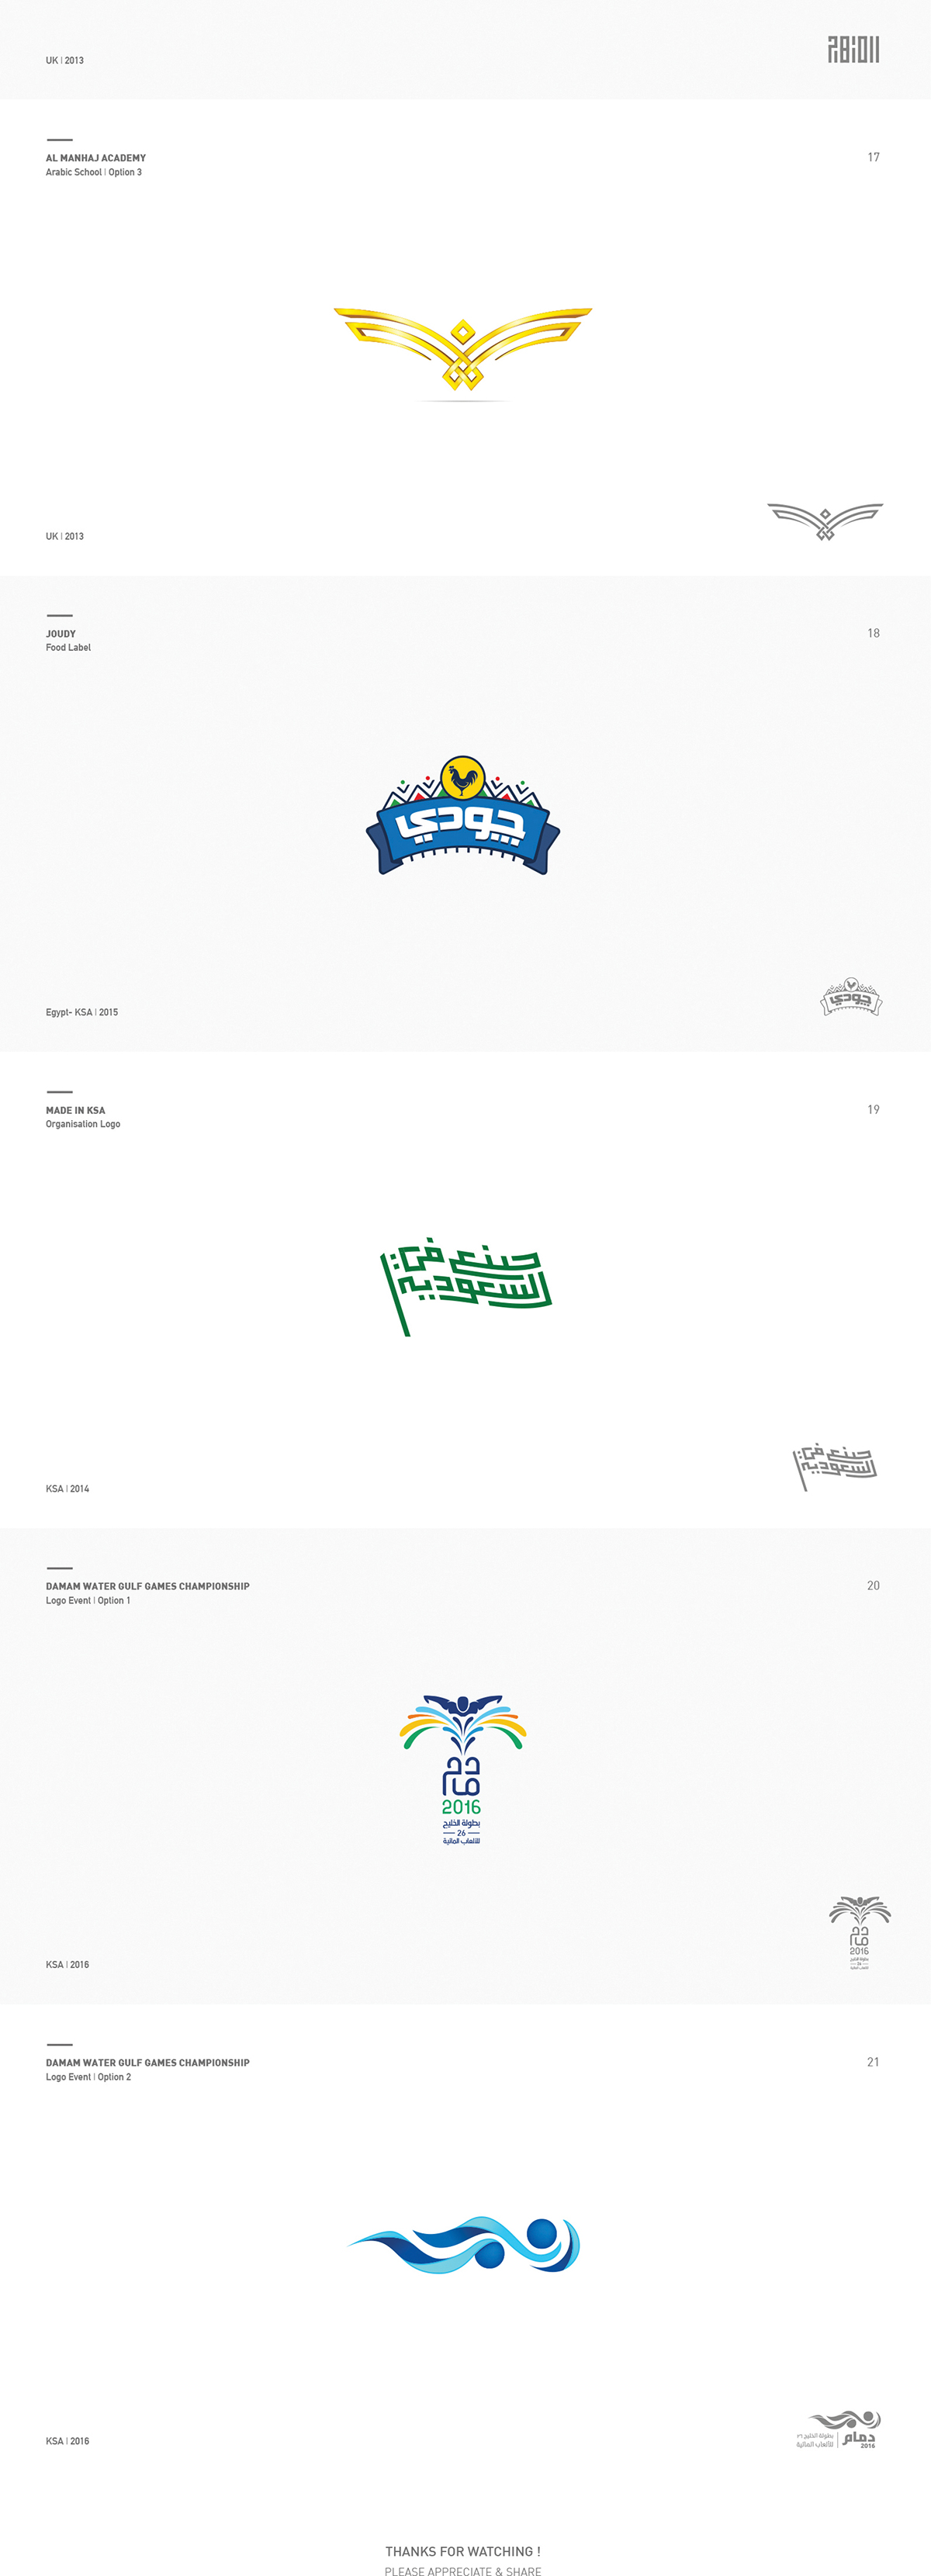 ARABIC LOGOFOLIO on Pantone Canvas Gallery